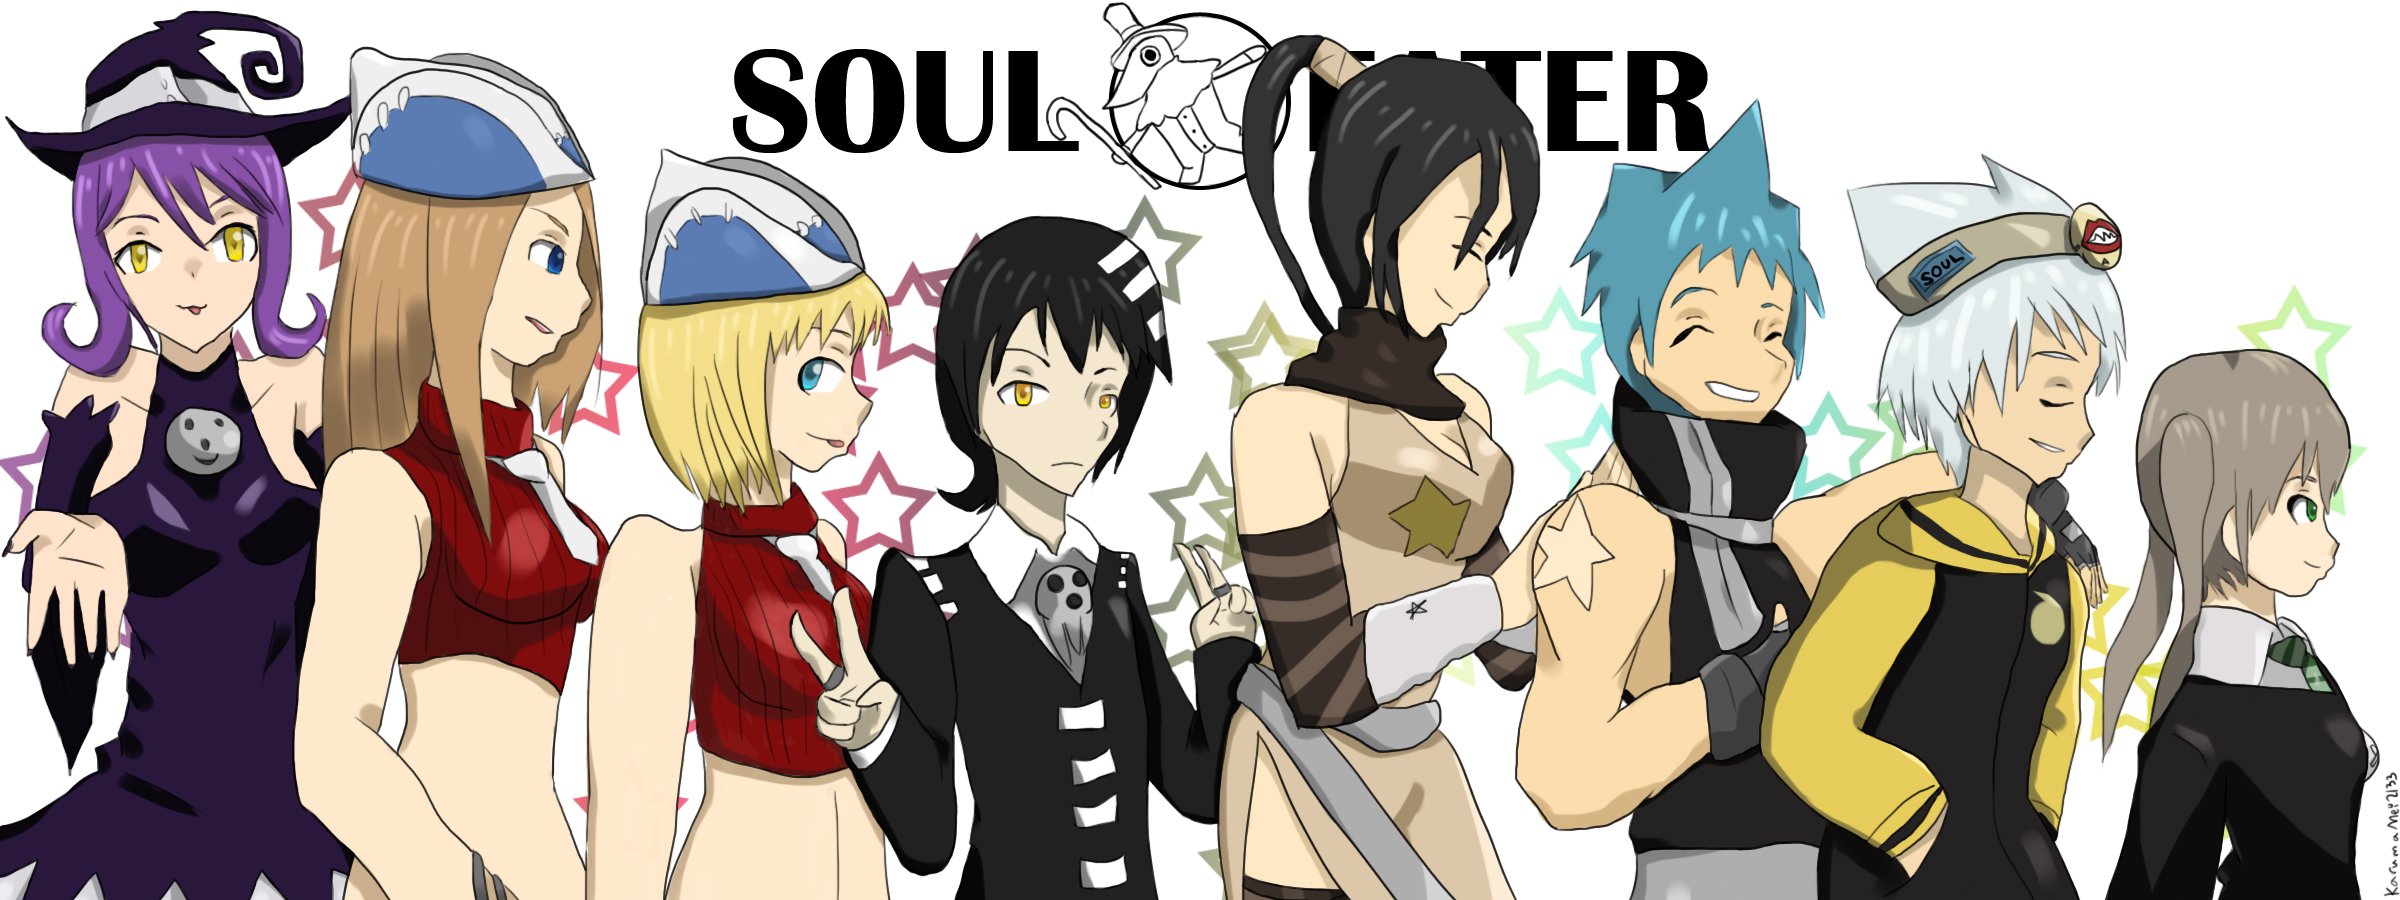 Soul Eater by KarumaMei2133 on DeviantArt